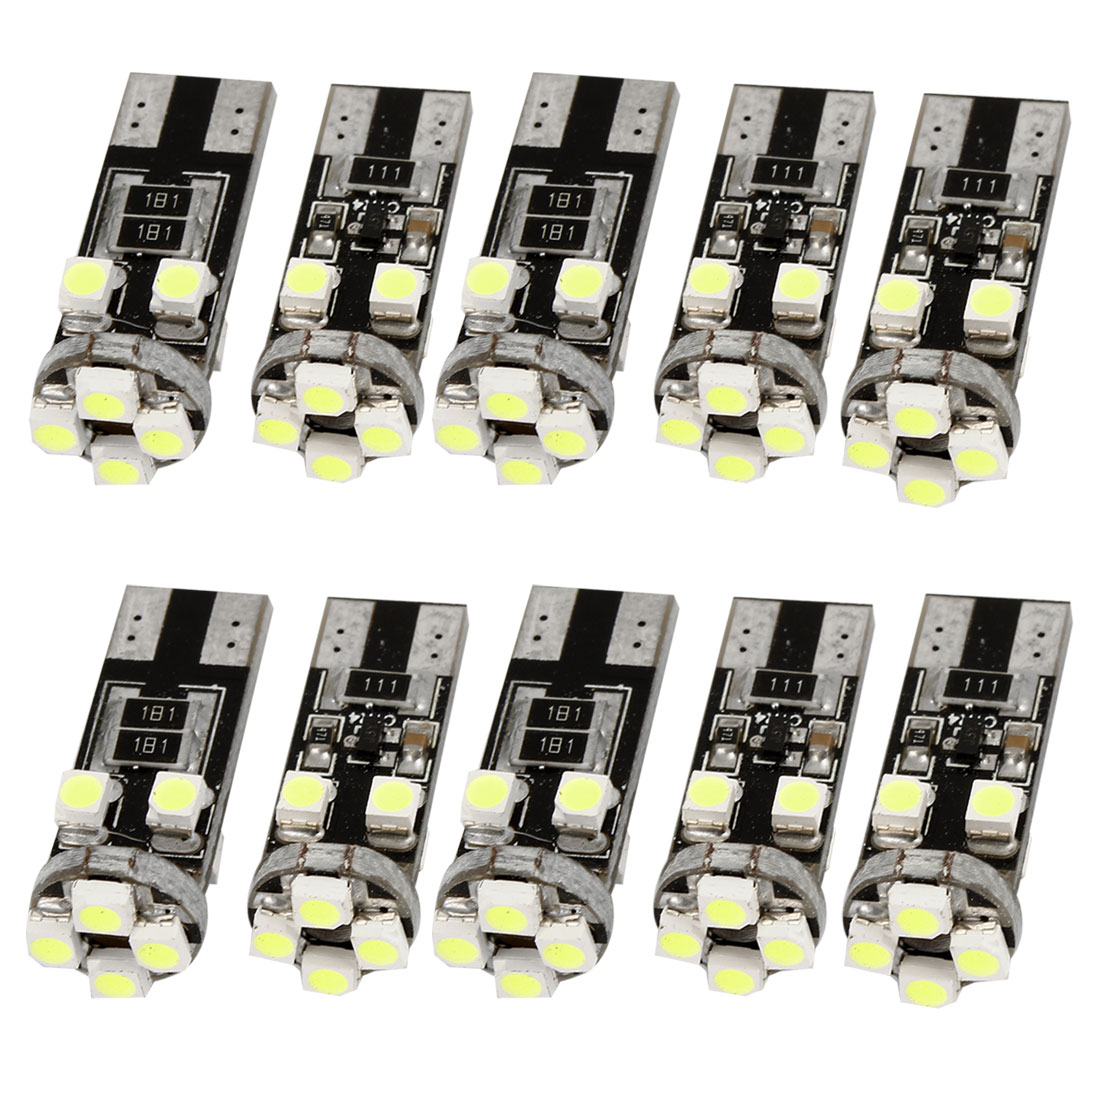 10 Pcs Canbus White T10 8 SMD 1210 Car Interior LED Light Bulbs W5W 194 168 Internal